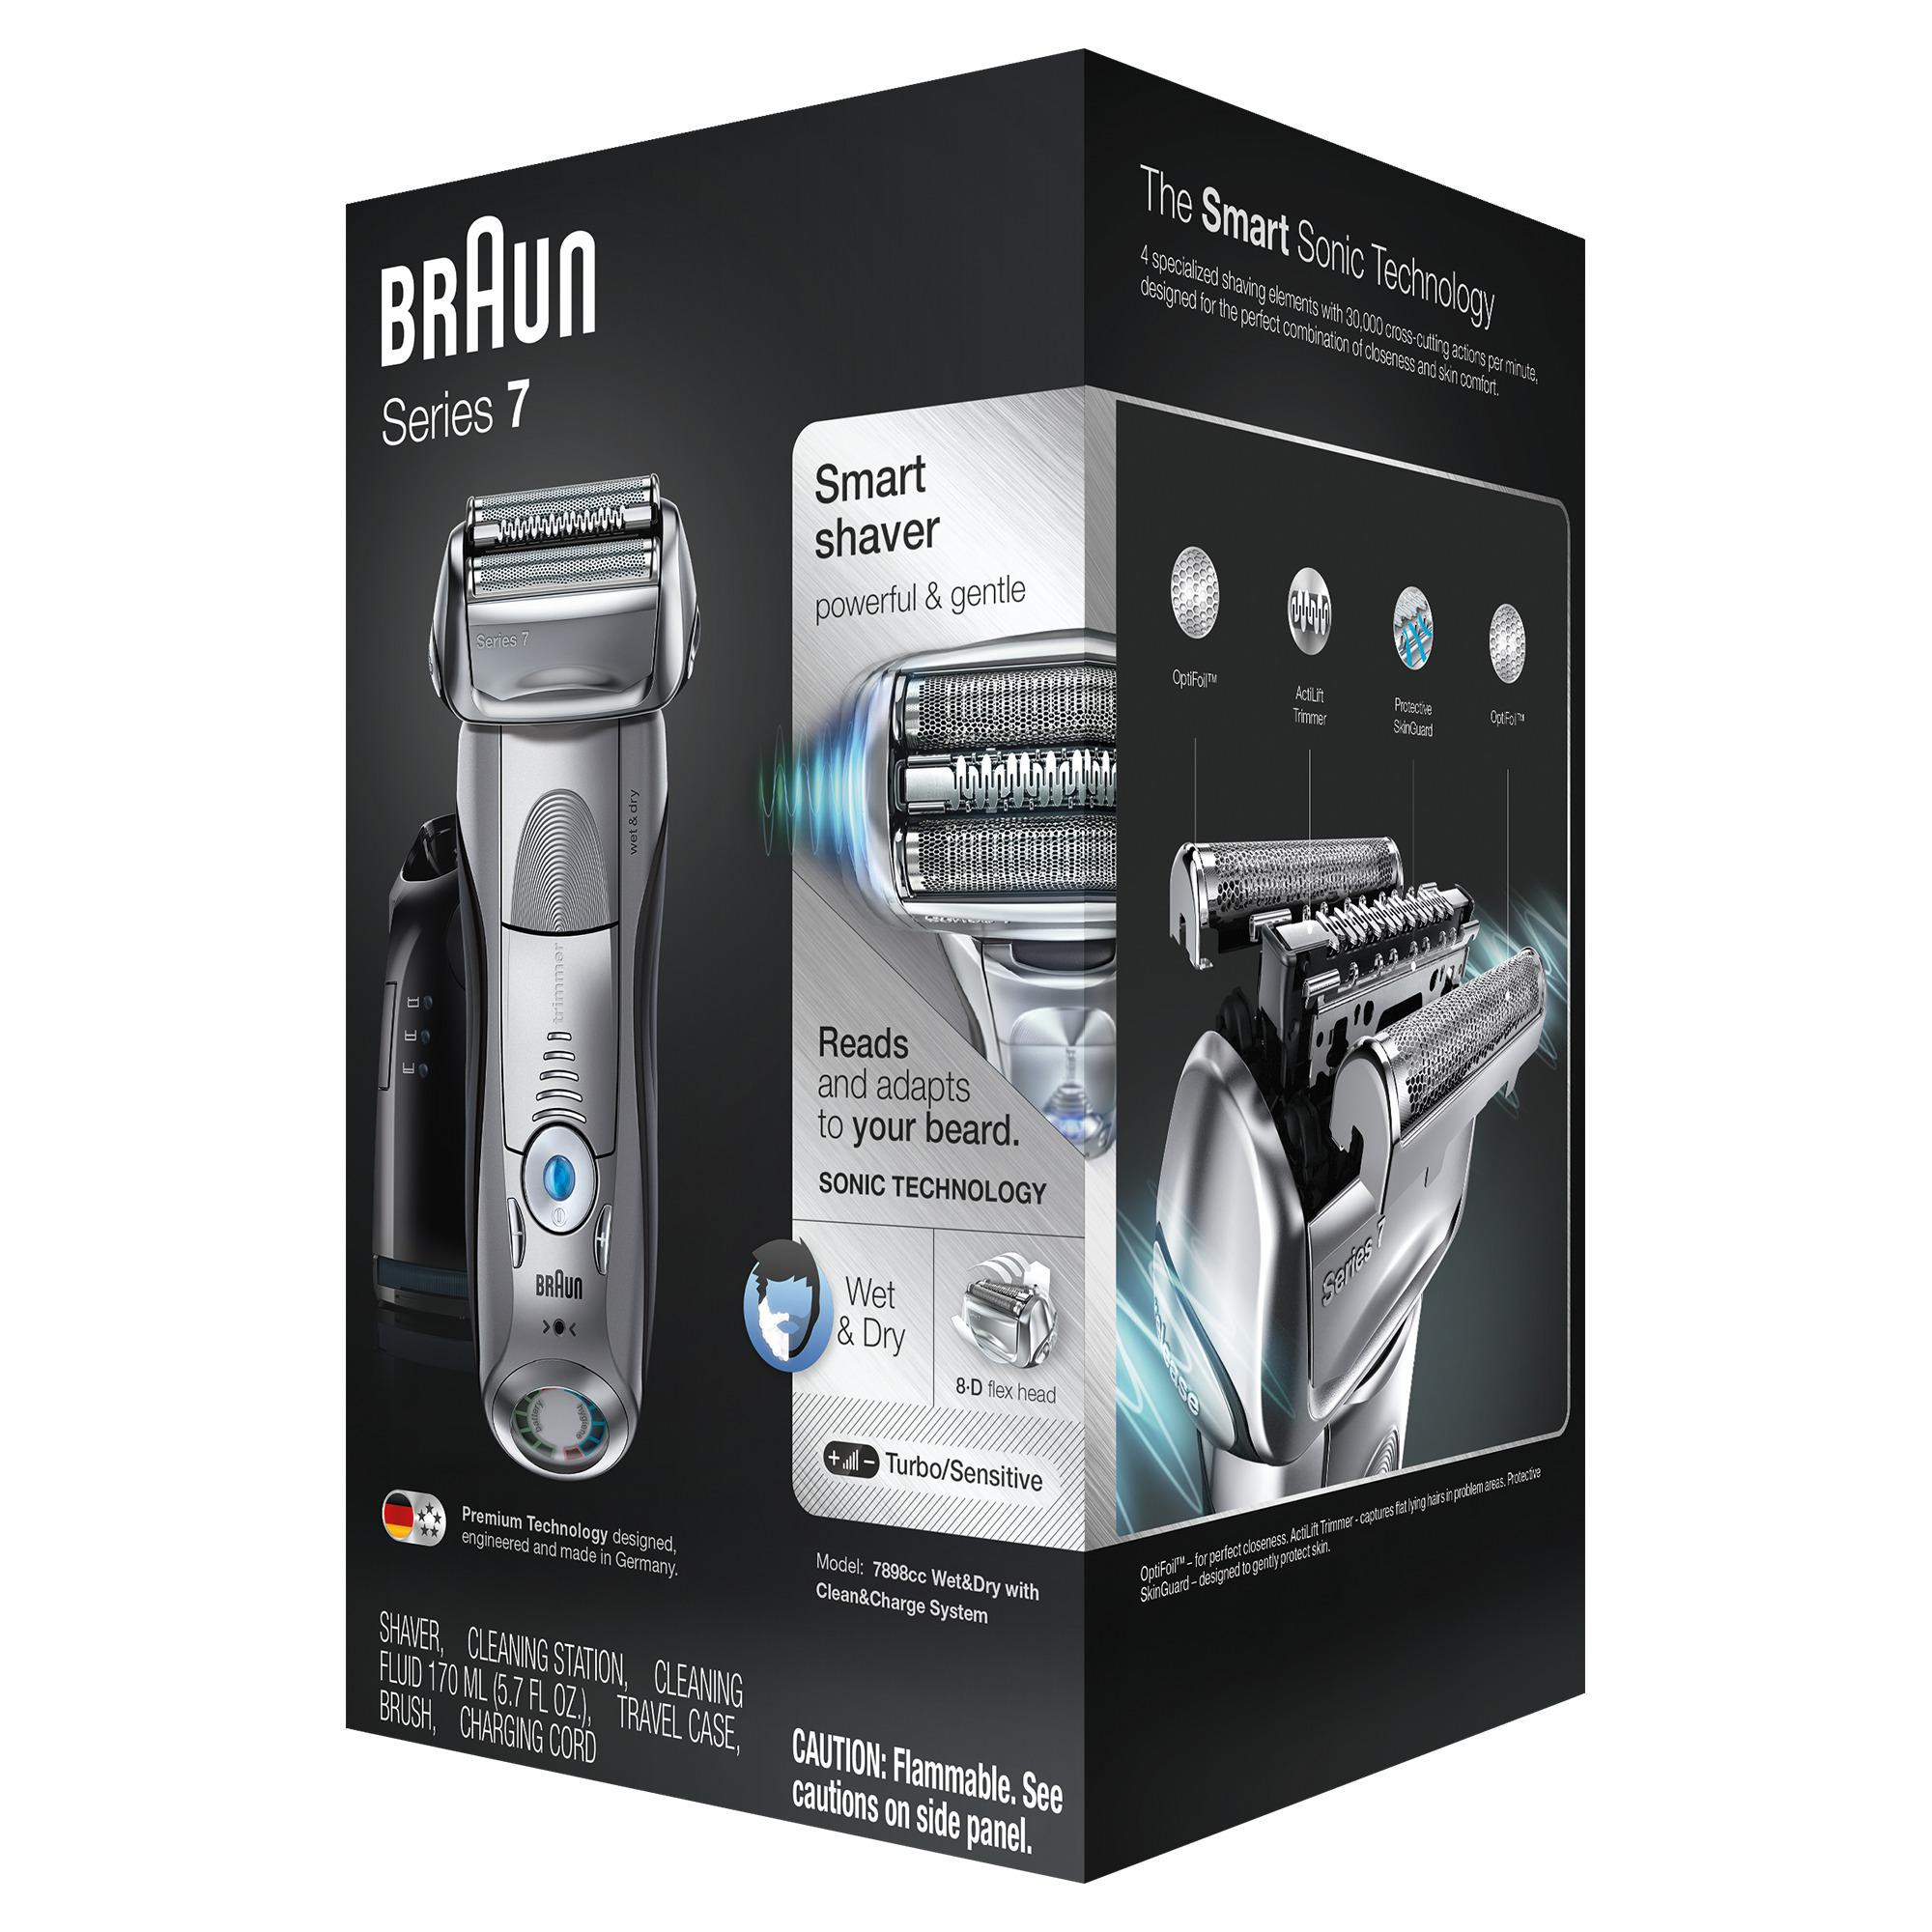 Braun Series 7 Men S Rechargeable Wet Dry Electric Foil Shaver With Cleaning Station Black Braun Electric Razor Foil Shaver Shaver